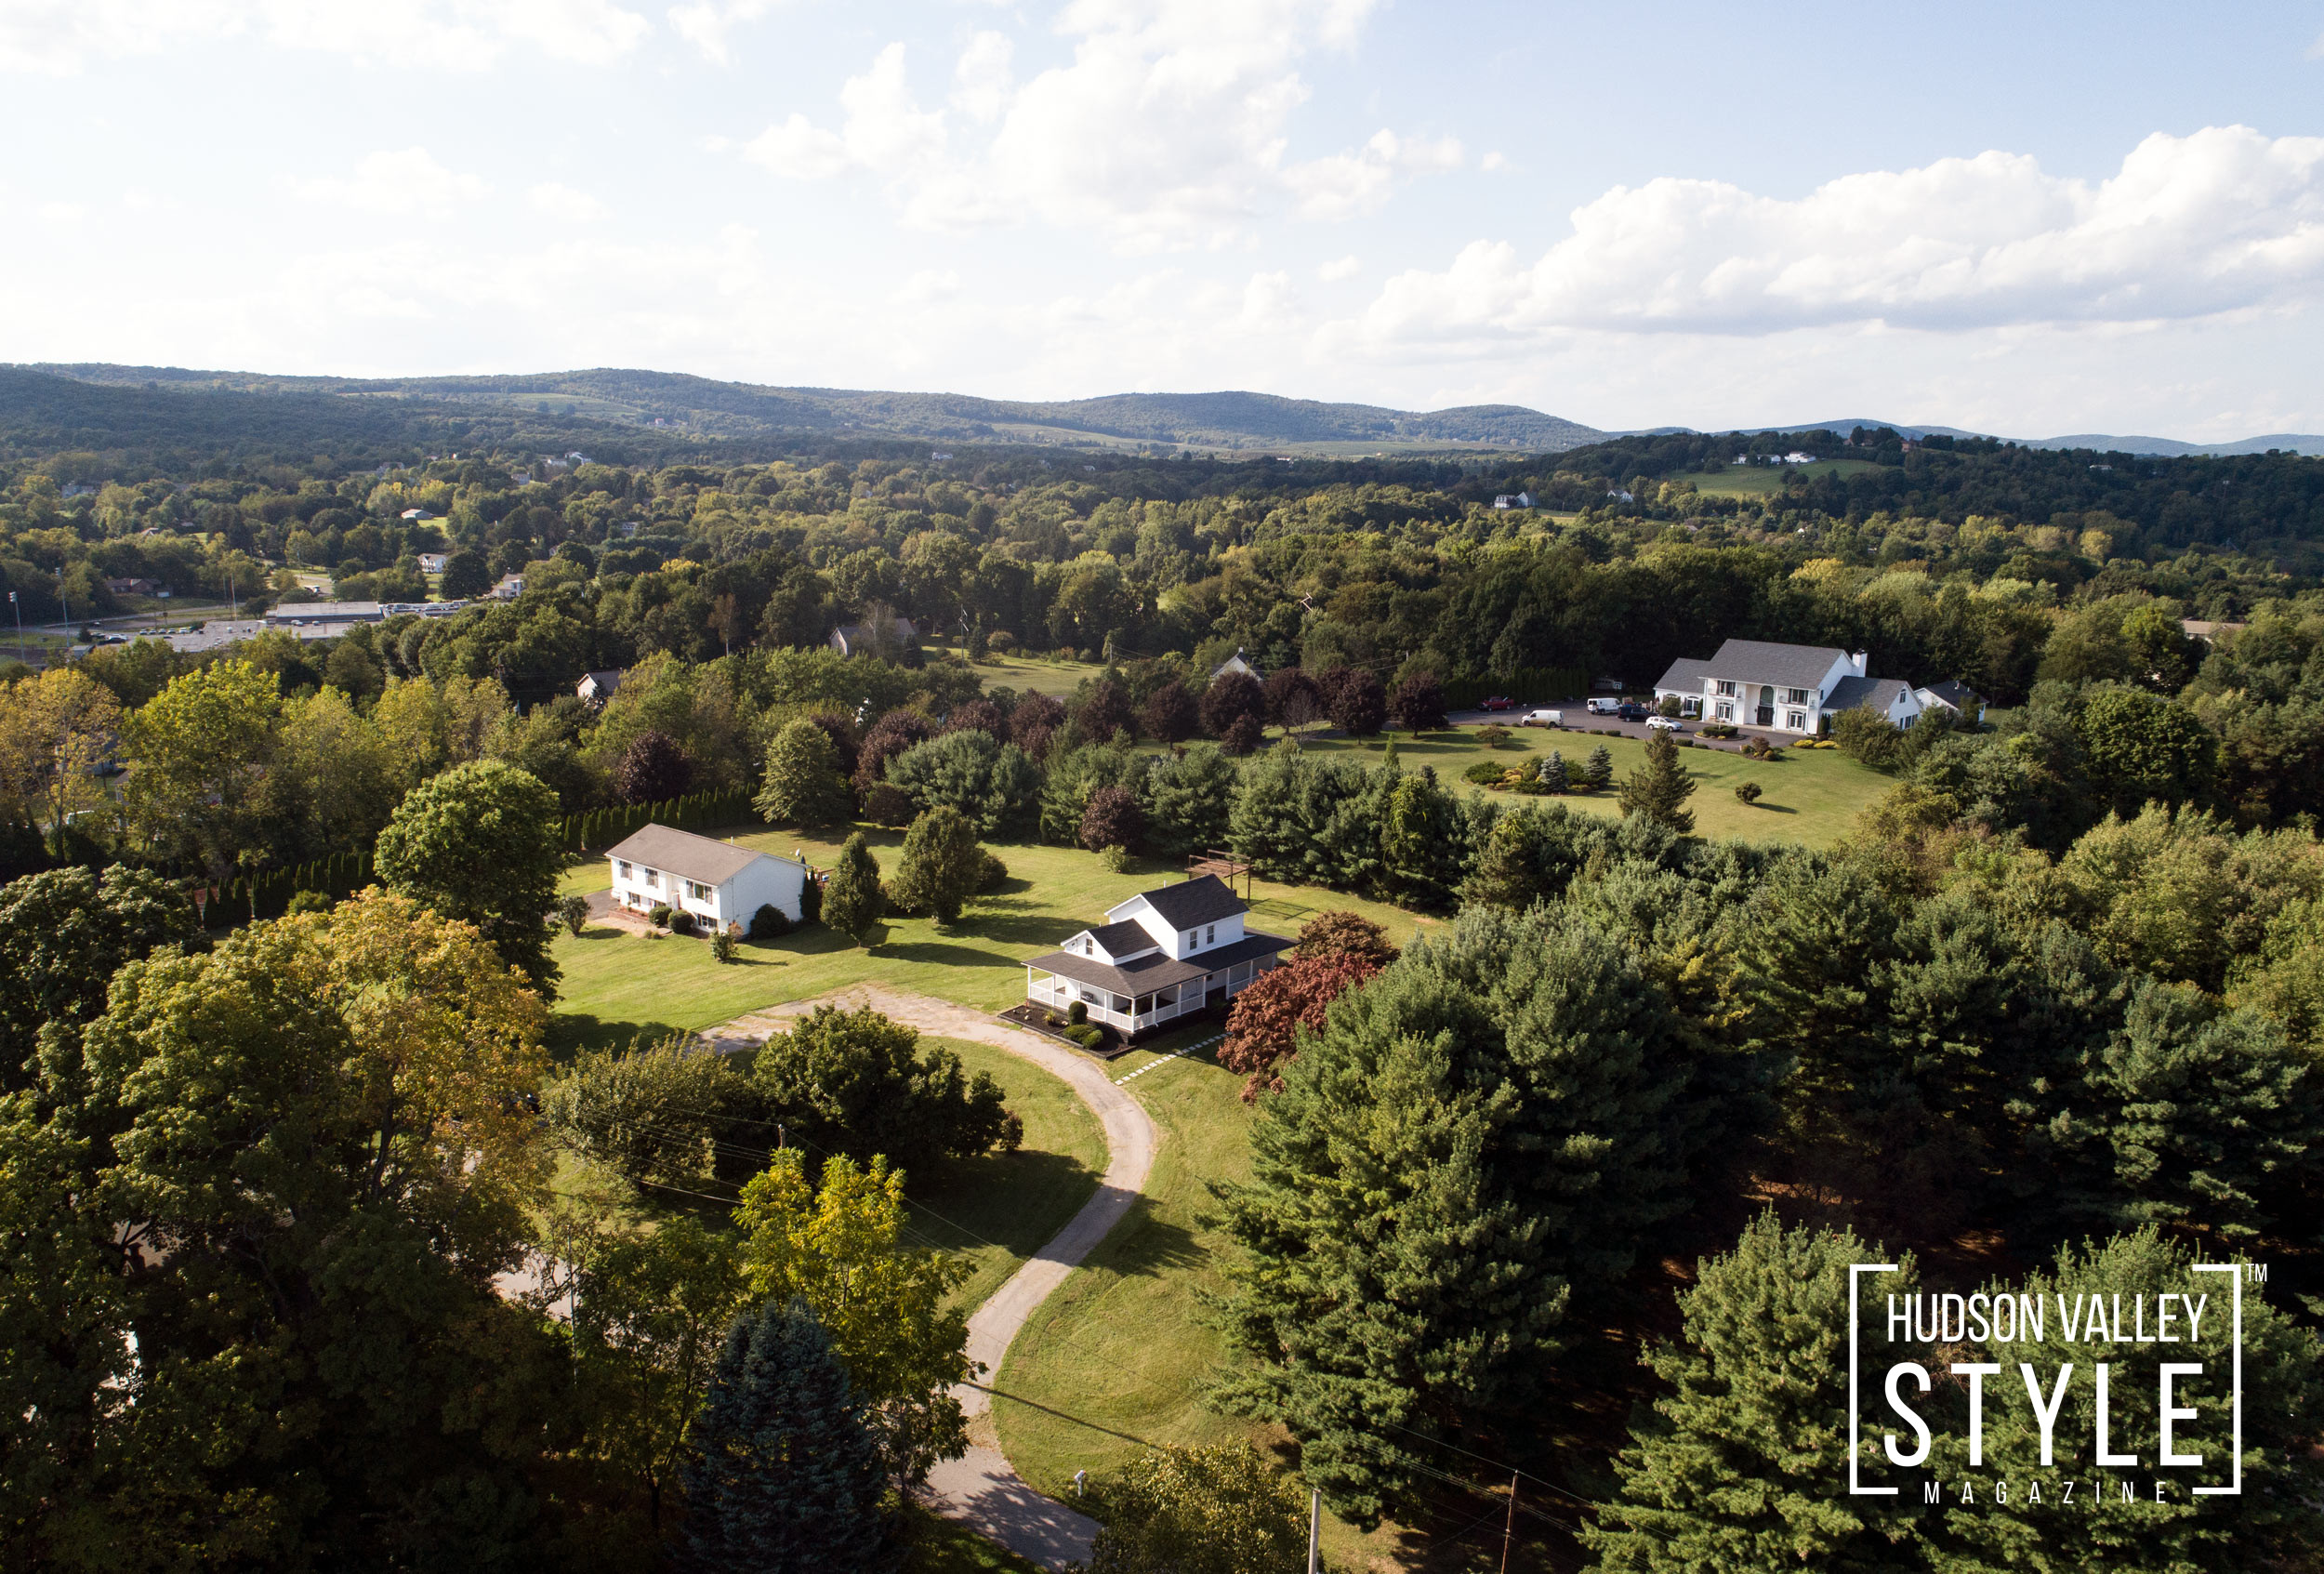 Home for Sale: Modern Rustic Hudson Valley Farmhouse - 10 Center St, Marlboro, NY 12542. New List Price: $349,900